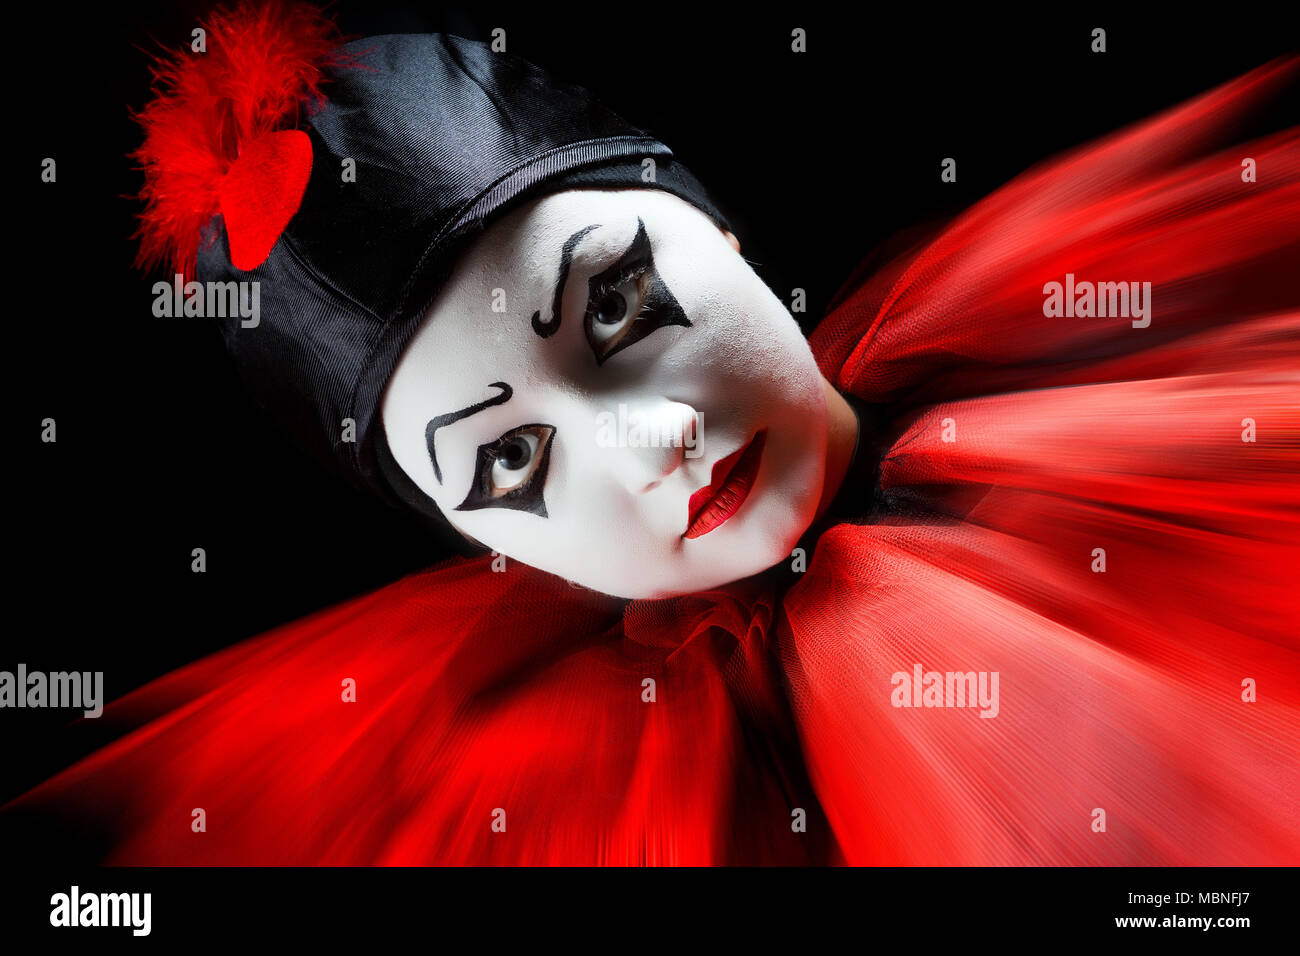 Flashing portrait in red and black of a mime pierrot clown - Stock Image